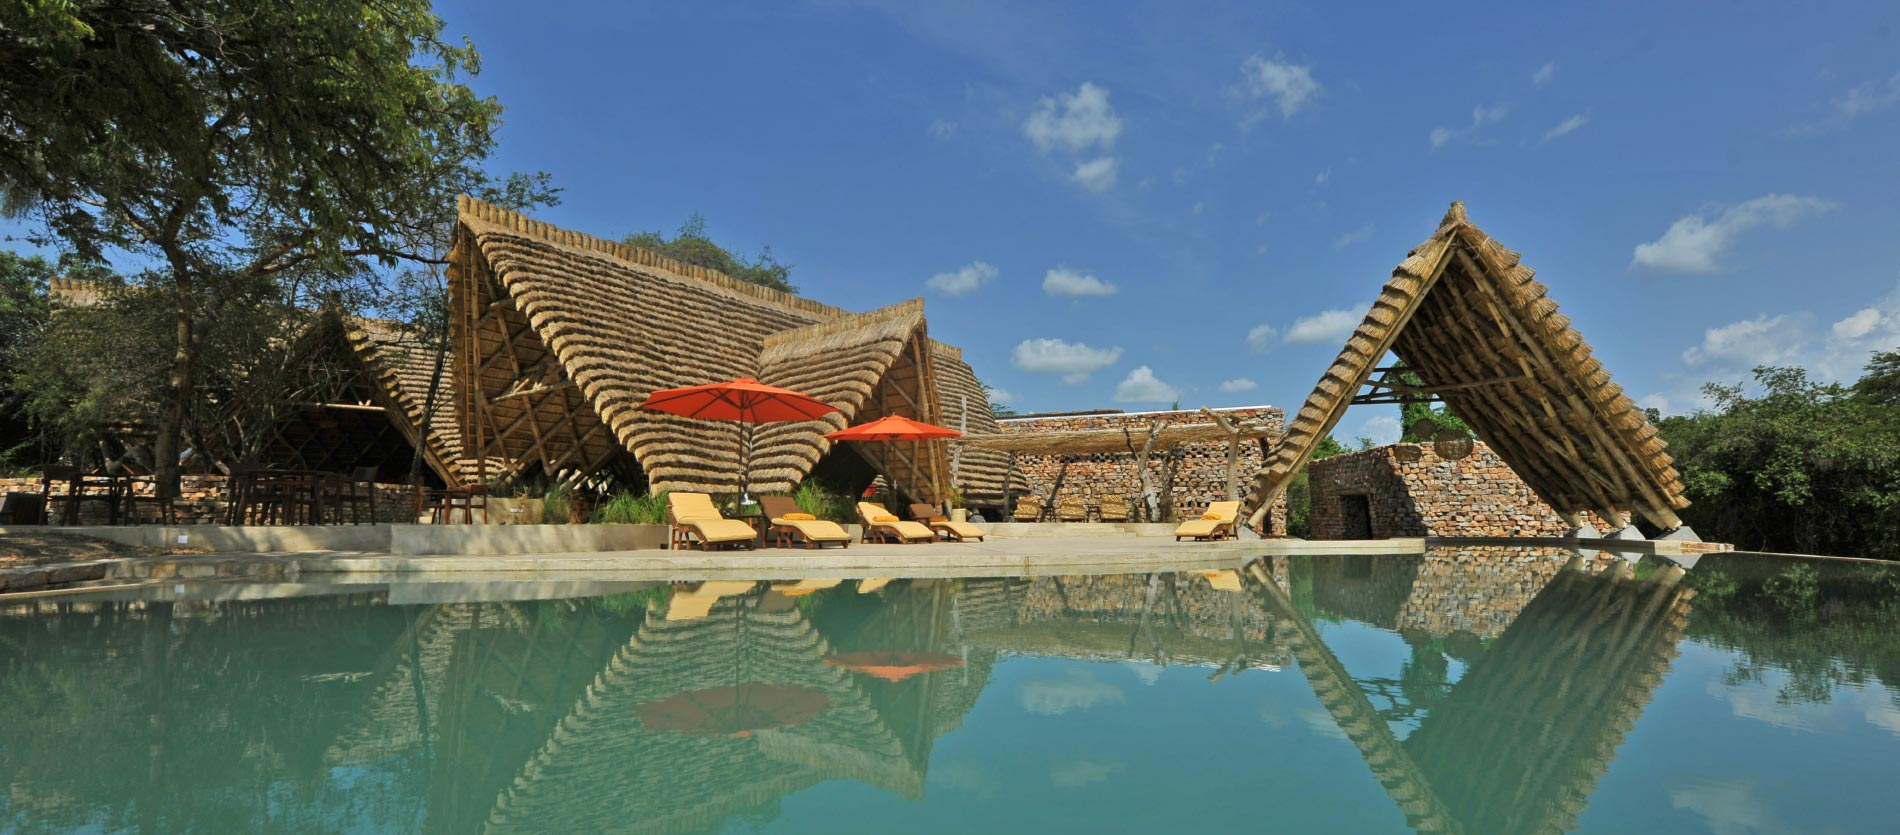 Nile Safari Lodge- Murchison Falls National Park